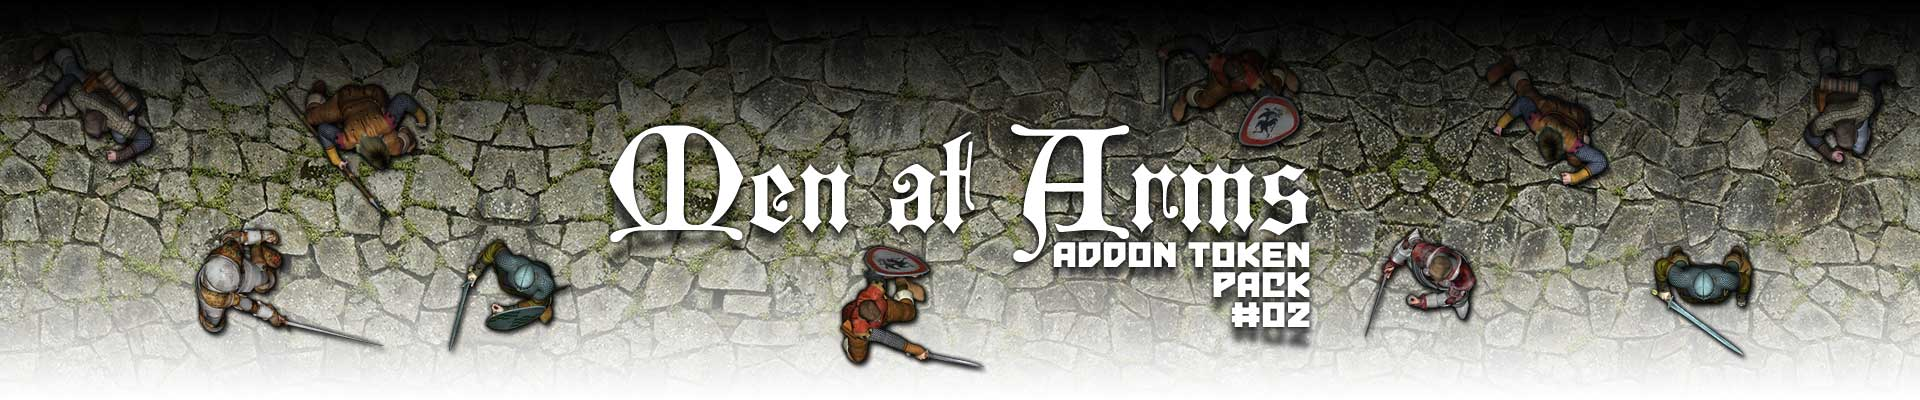 Addon Token Package #2: Men at Arms